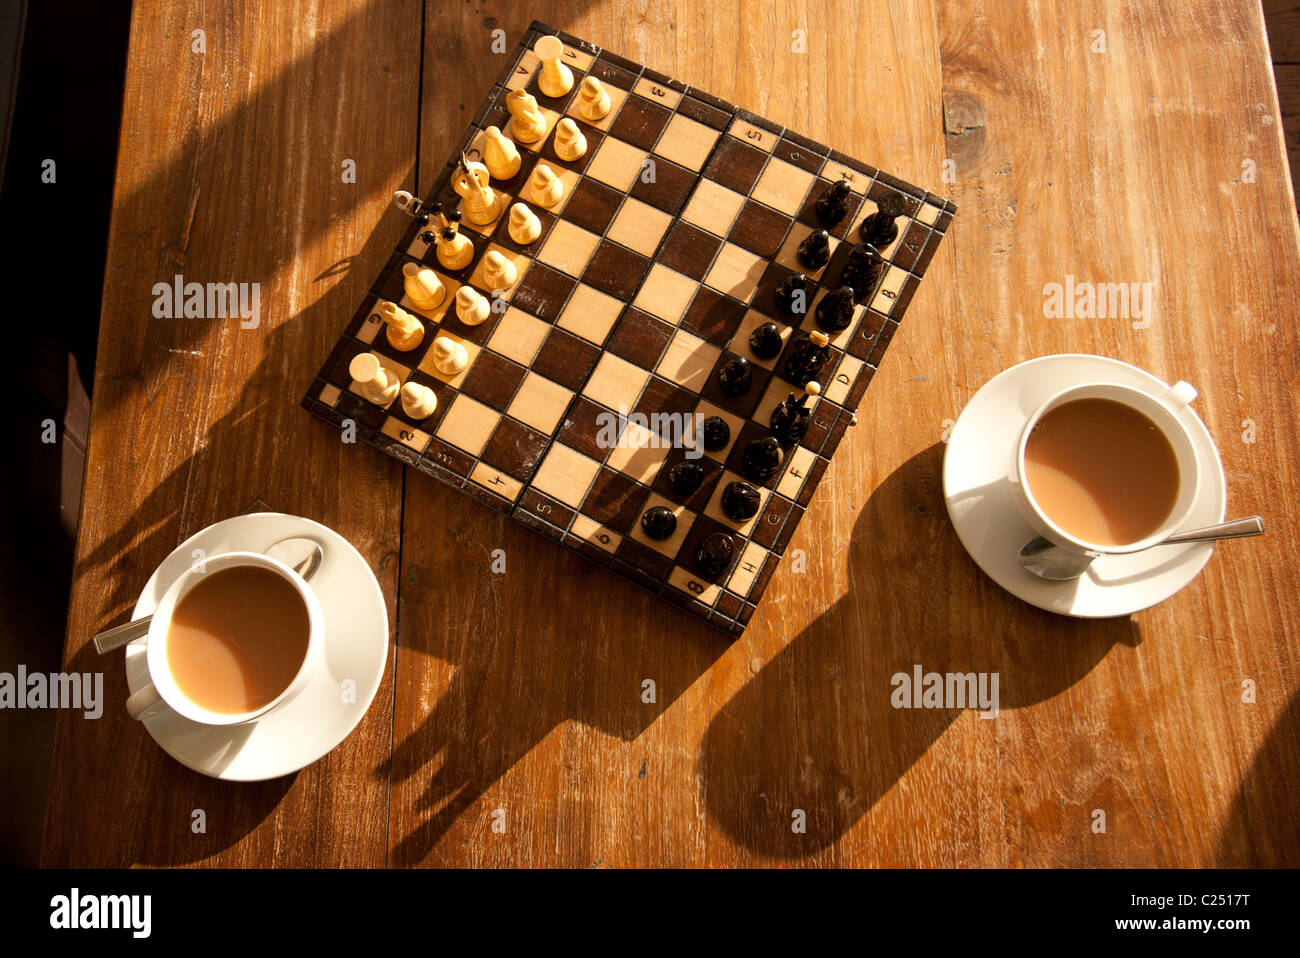 Game Of Chess Set Out On A Coffee Table With Two Cups Of Tea.